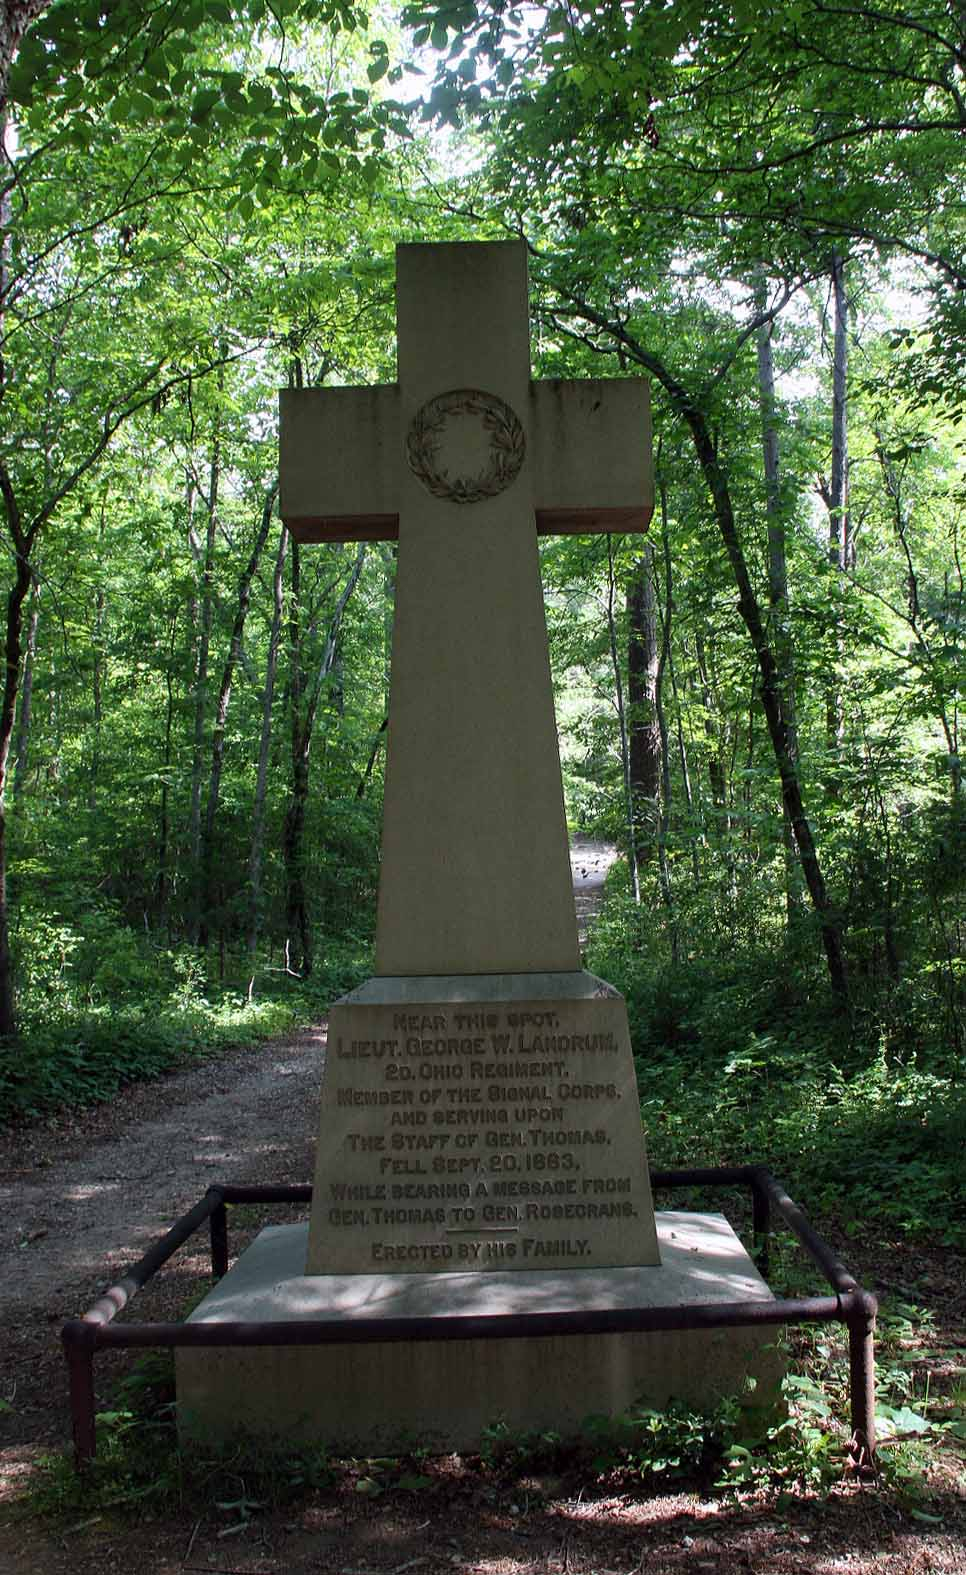 George W. Landrum Memorial Monument, click photo to enlarge.